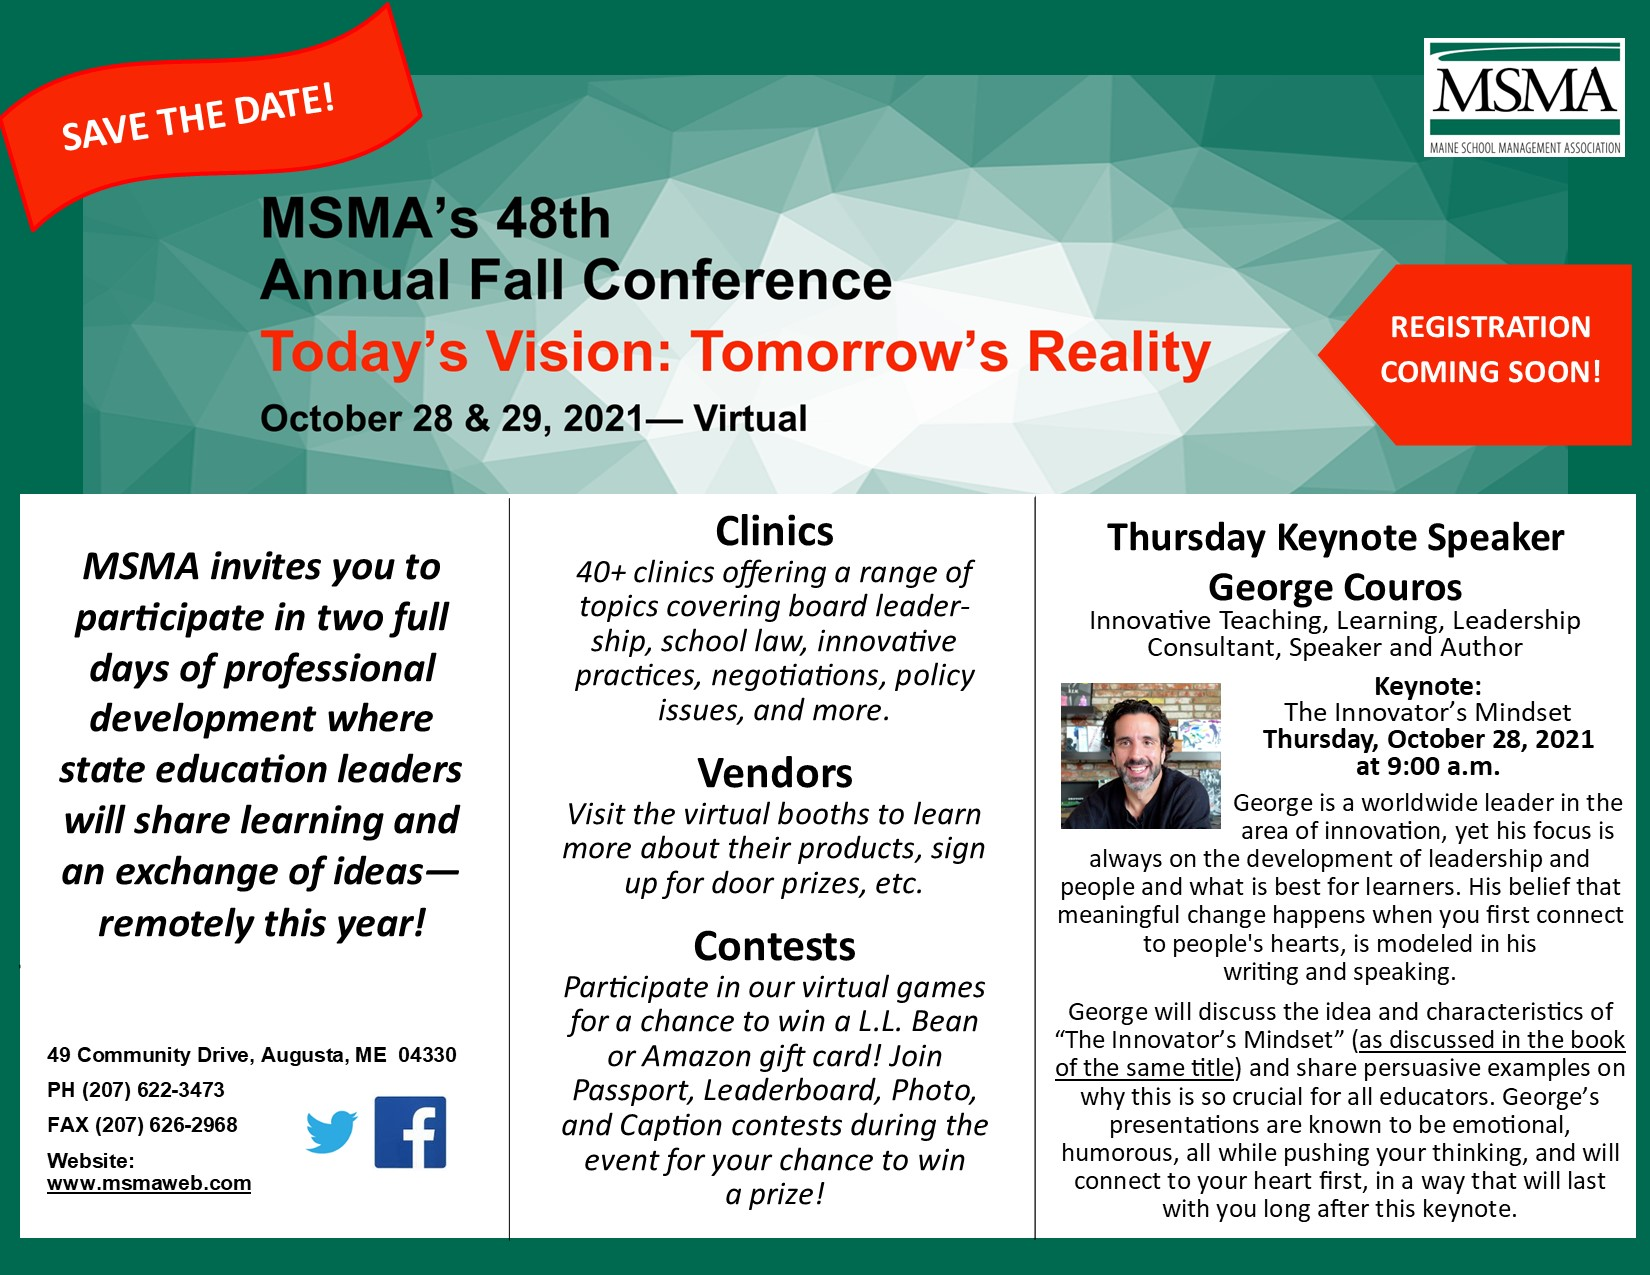 Fall Conference Save the Date